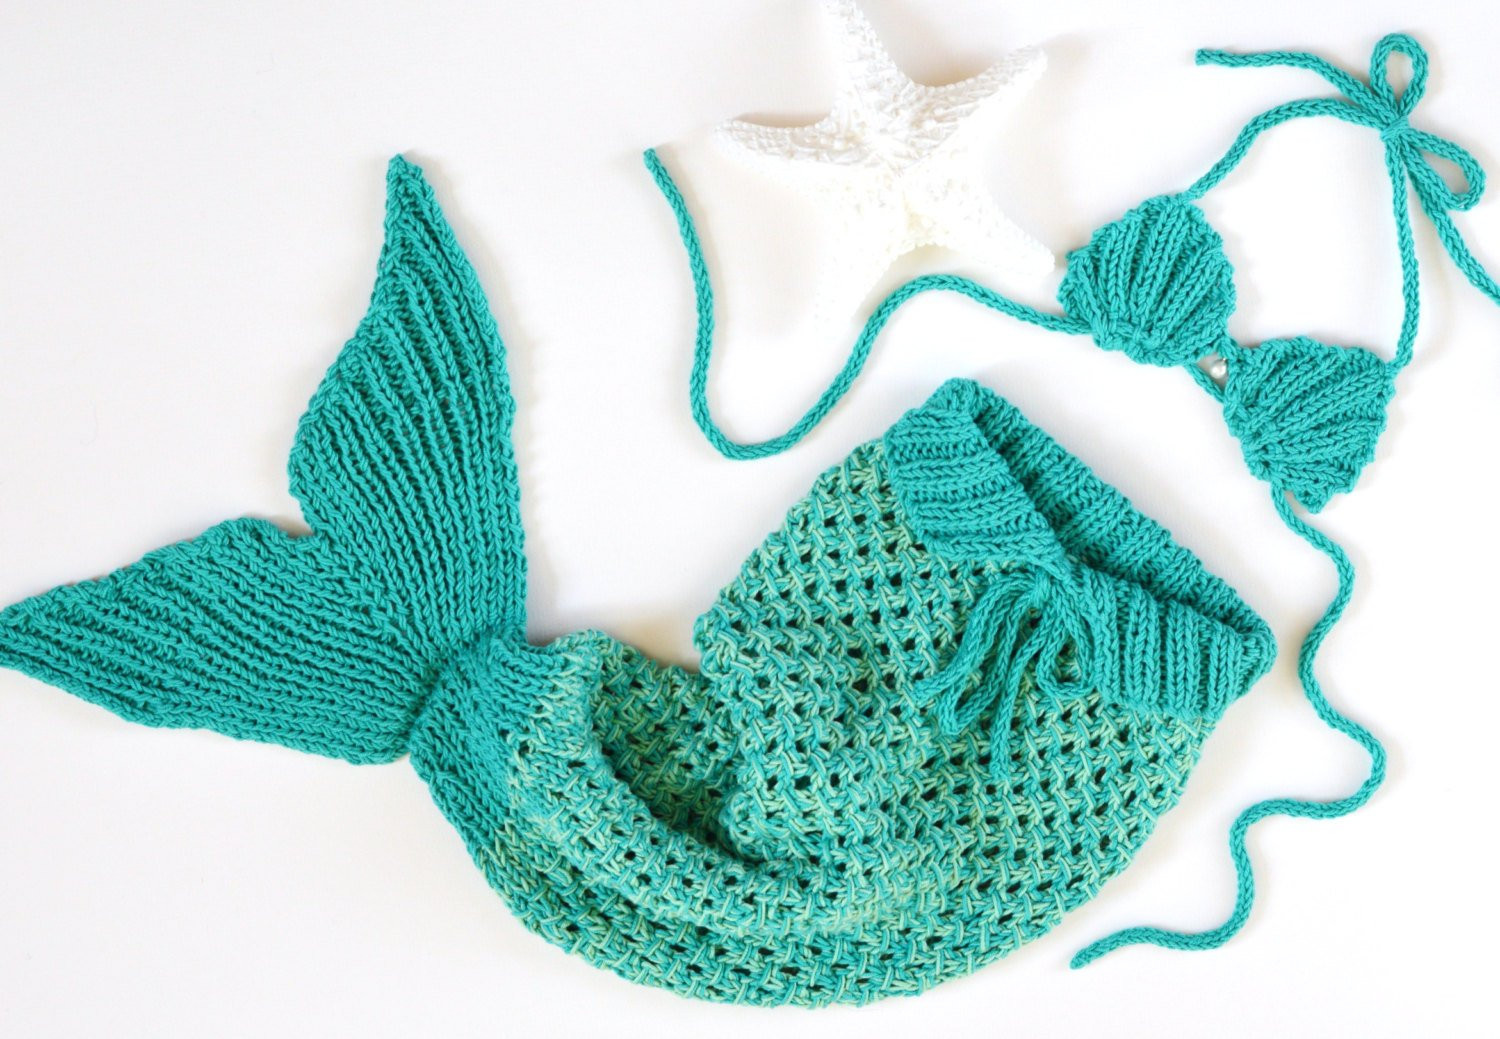 Elegant Knitting Pattern Baby Mermaid Tail Blanket 5 Sizes Newborn 1 Knitted Mermaid Tail Of Perfect 38 Ideas Knitted Mermaid Tail